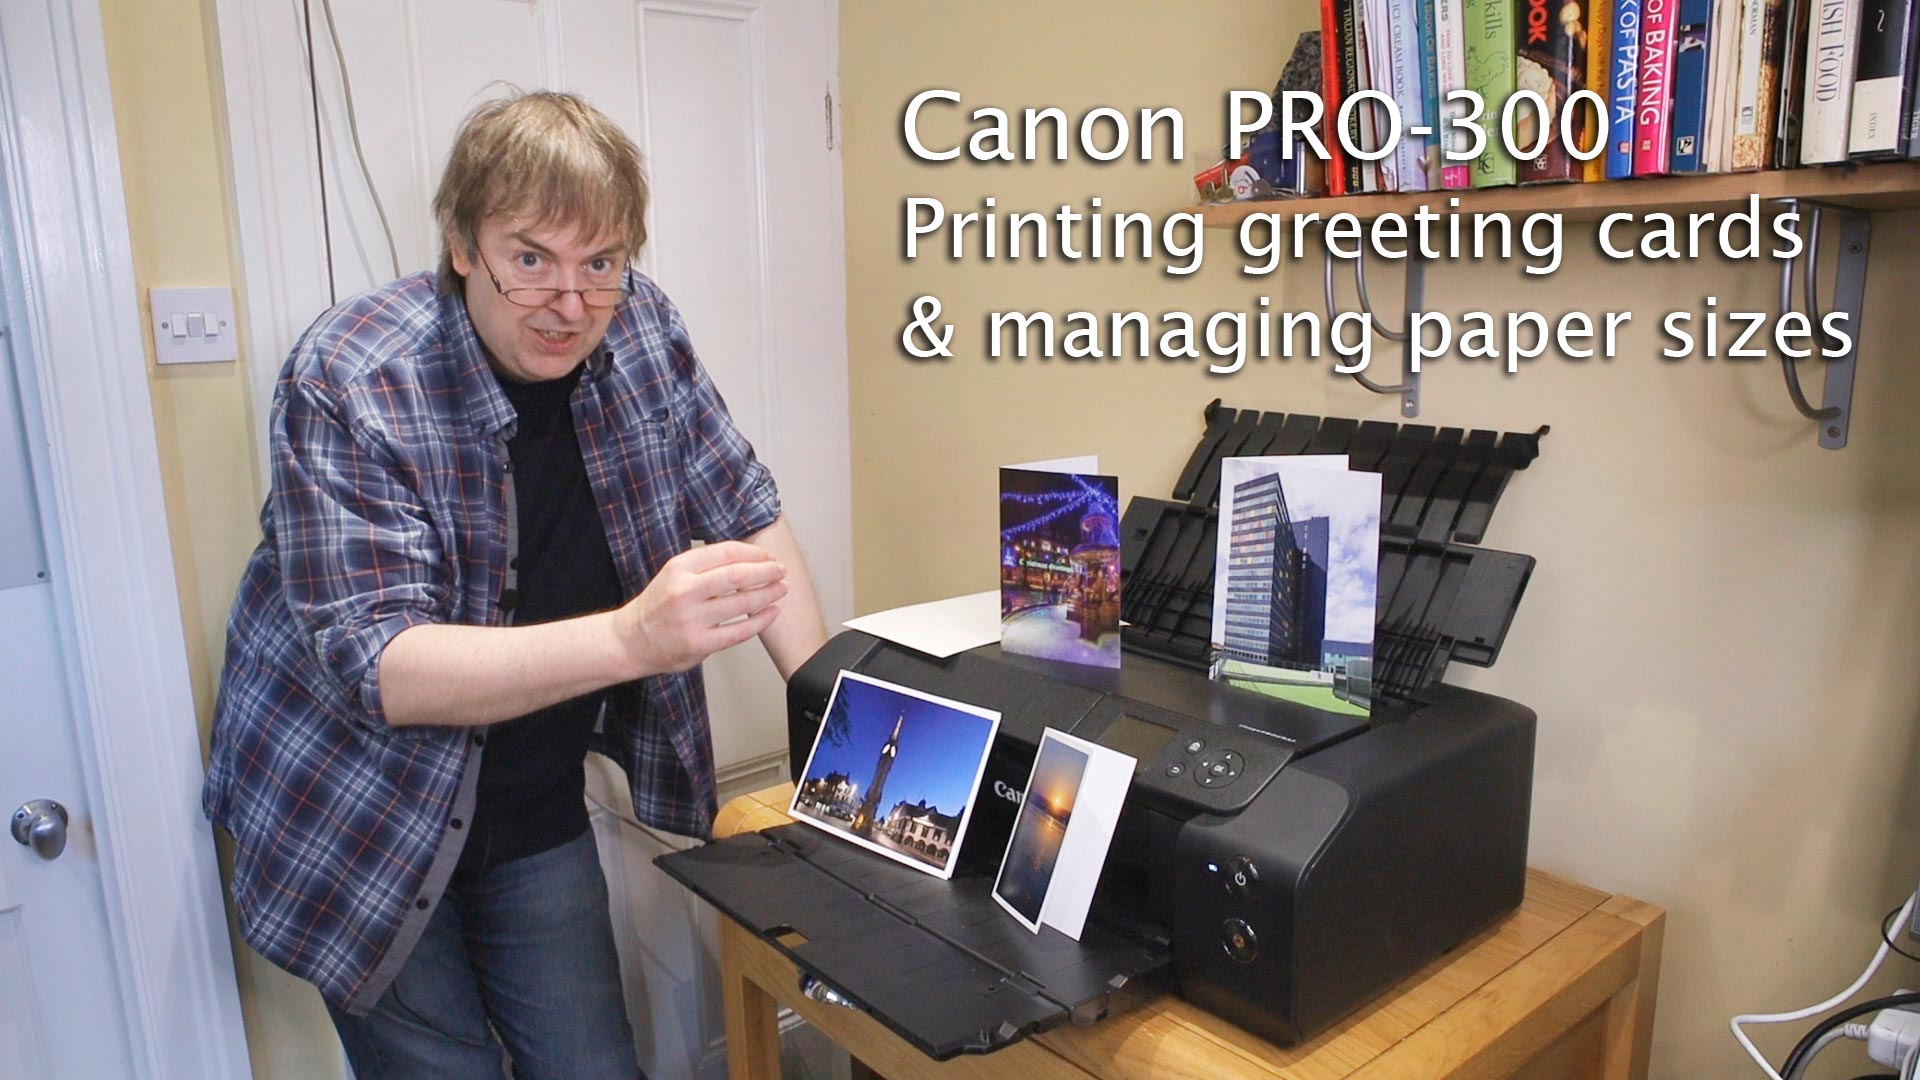 printing greeting cards on the PRO-300